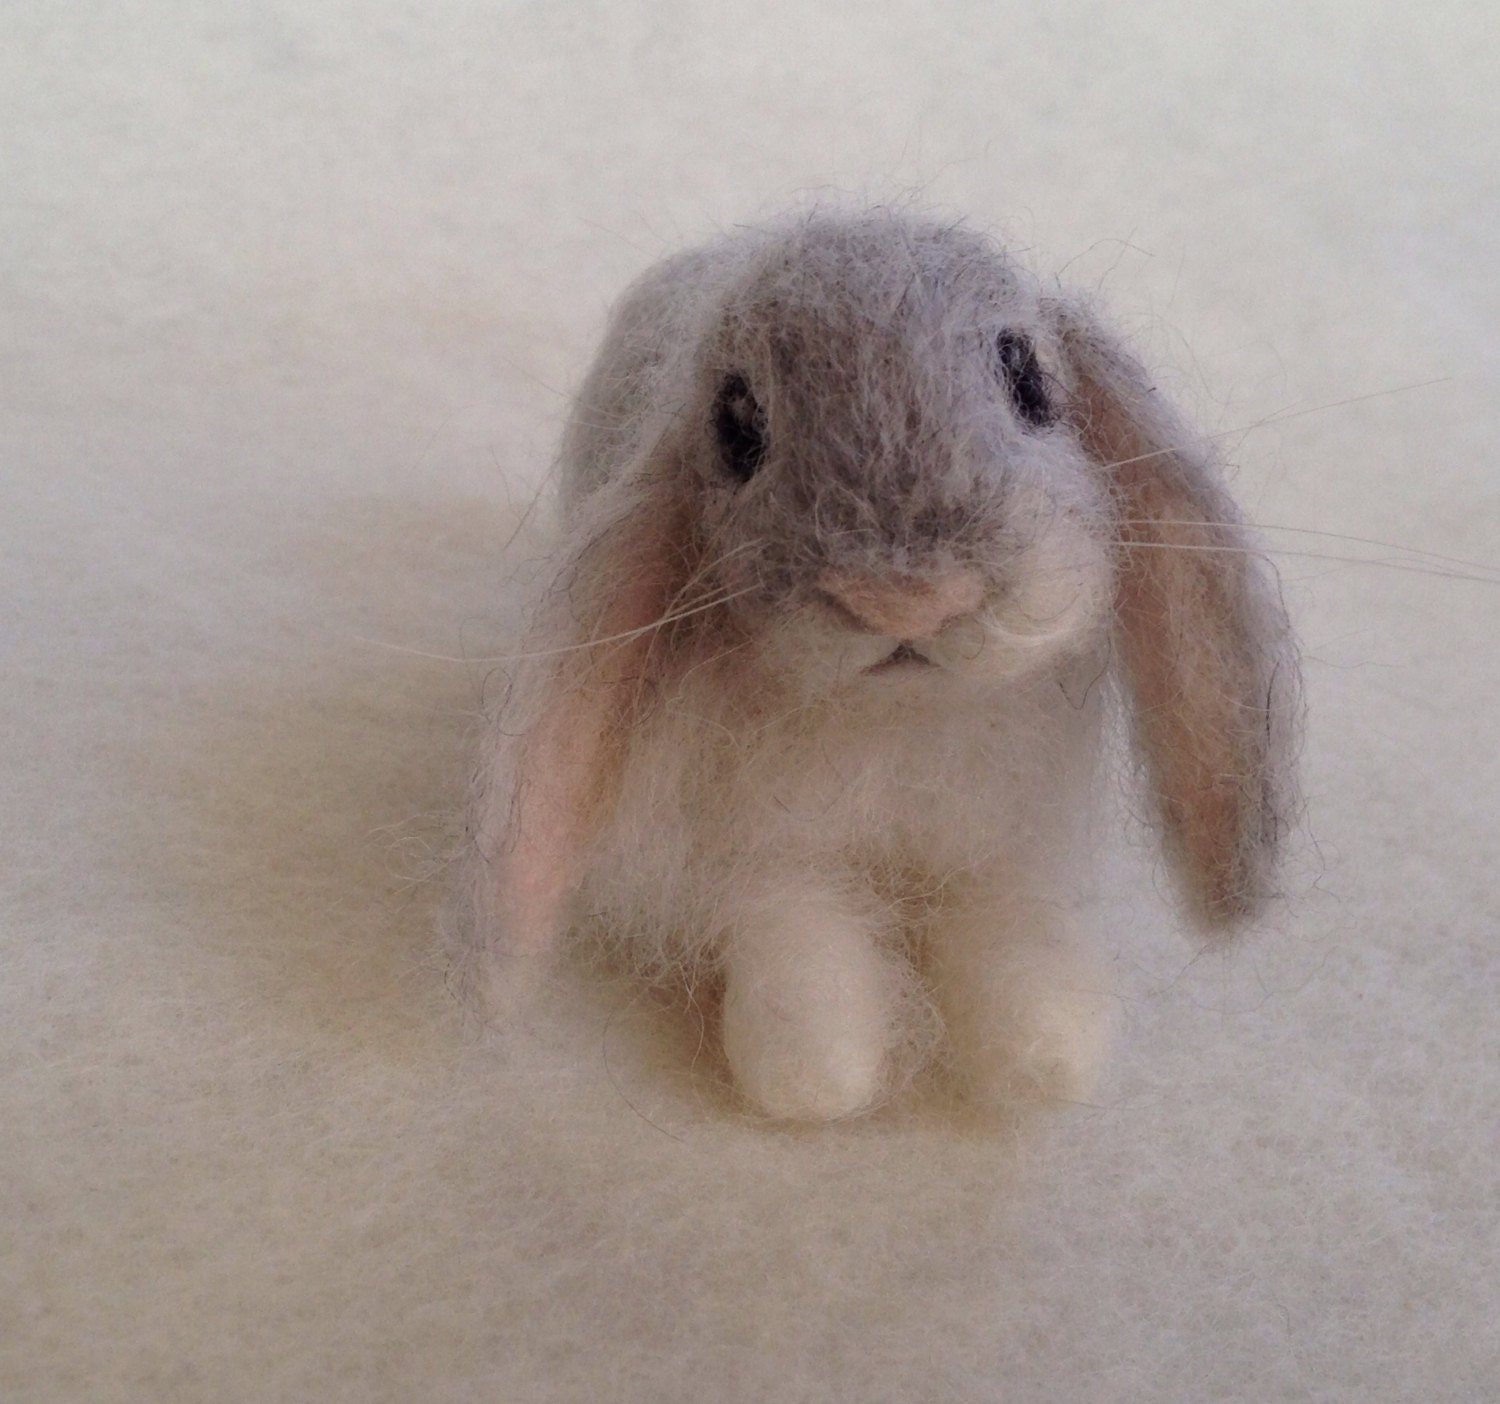 Baby lop eared rabbit - photo#10